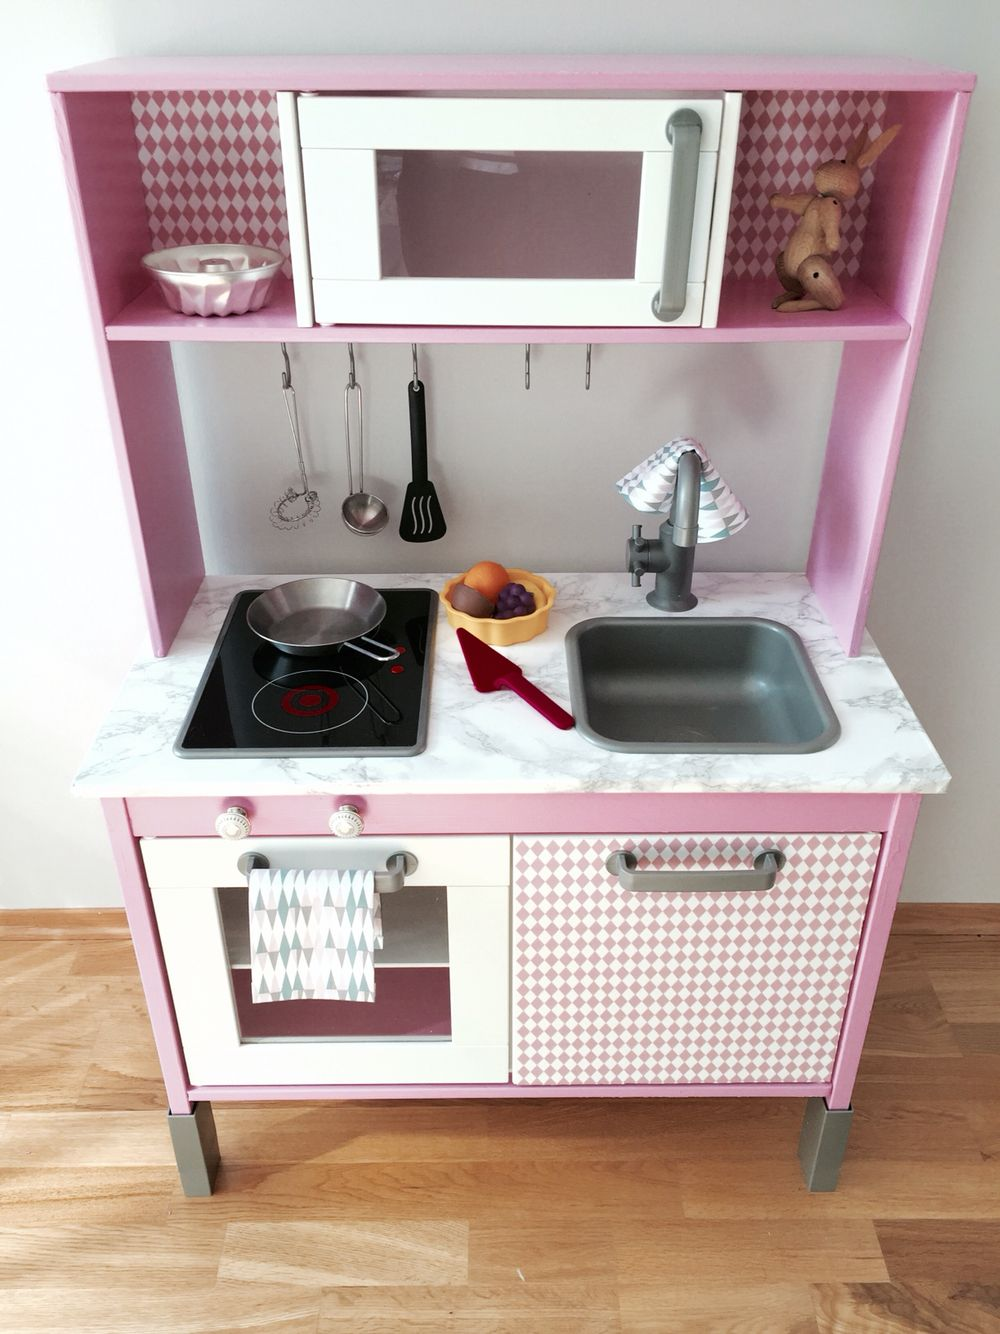 DIY Duktig IKEA Kitchen Hack In Pink And Grey. Decor From Panduro. Girl  Edition.